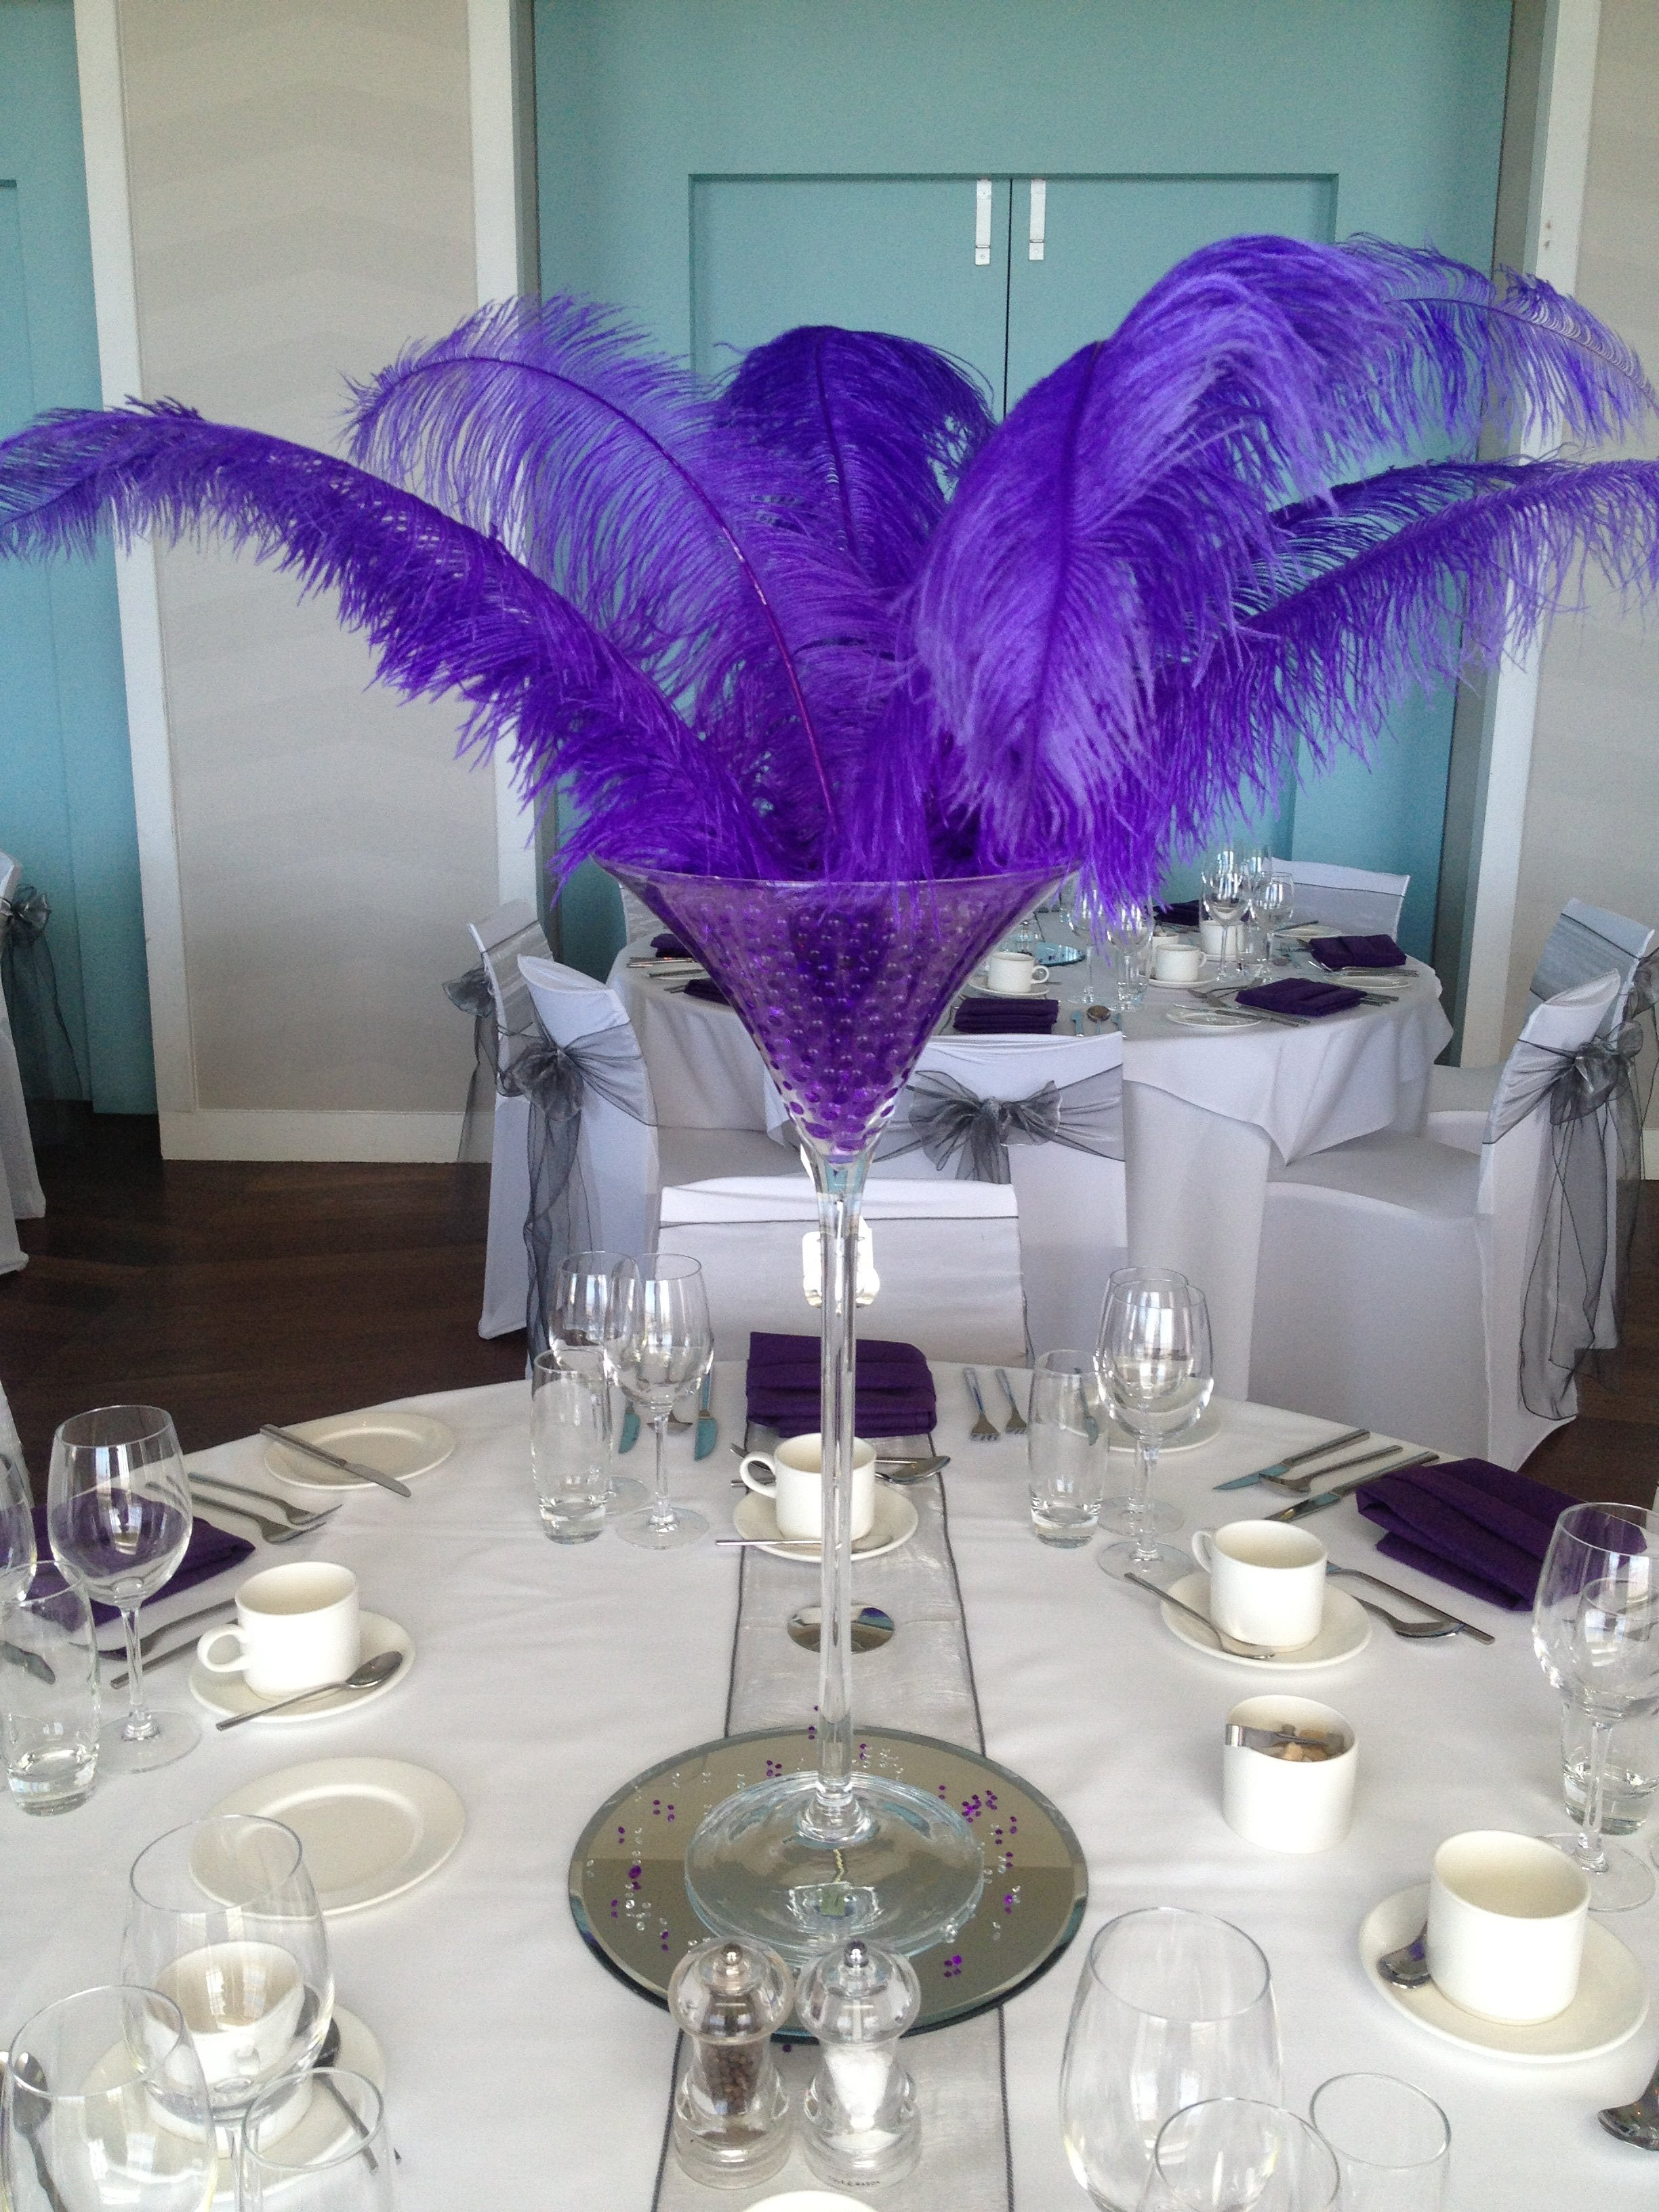 Masquerade Ball Decorations Razzle Dazzle Wedding And Party